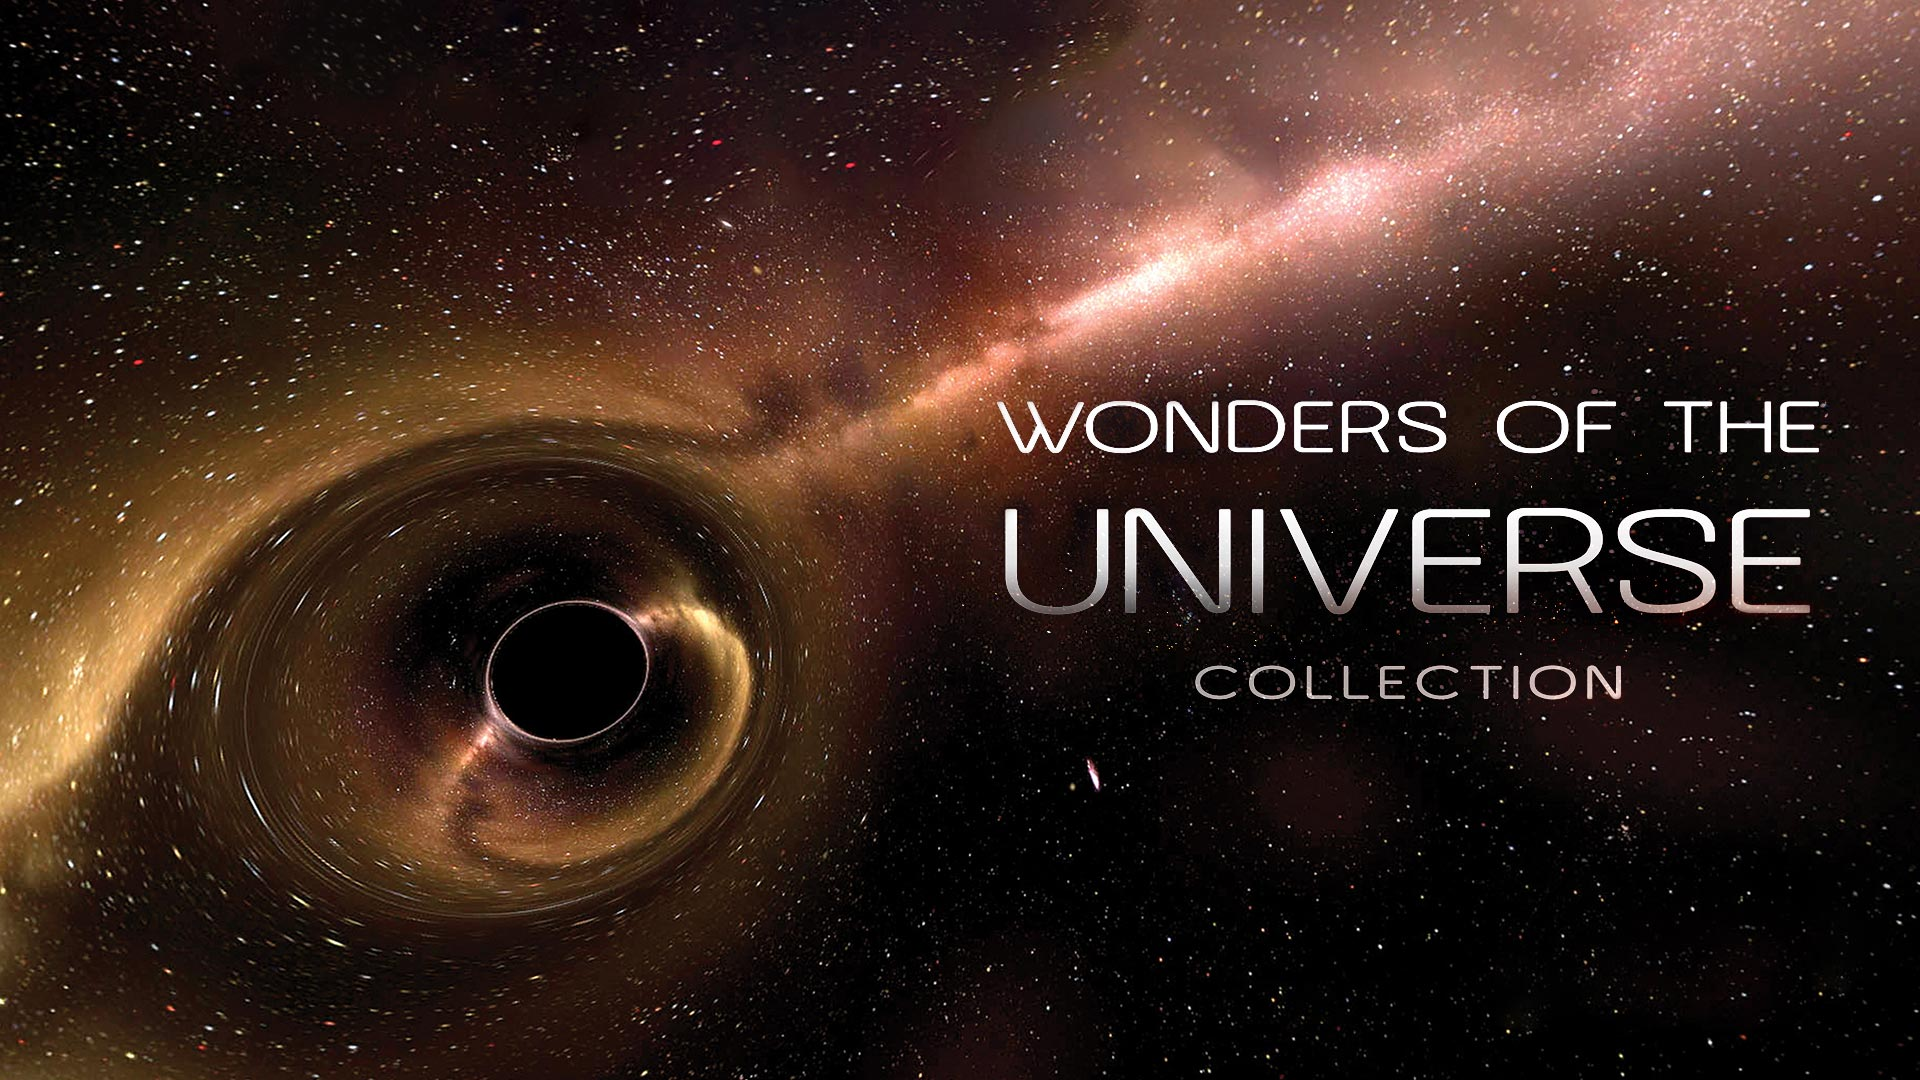 Wonders of the Universe Collection